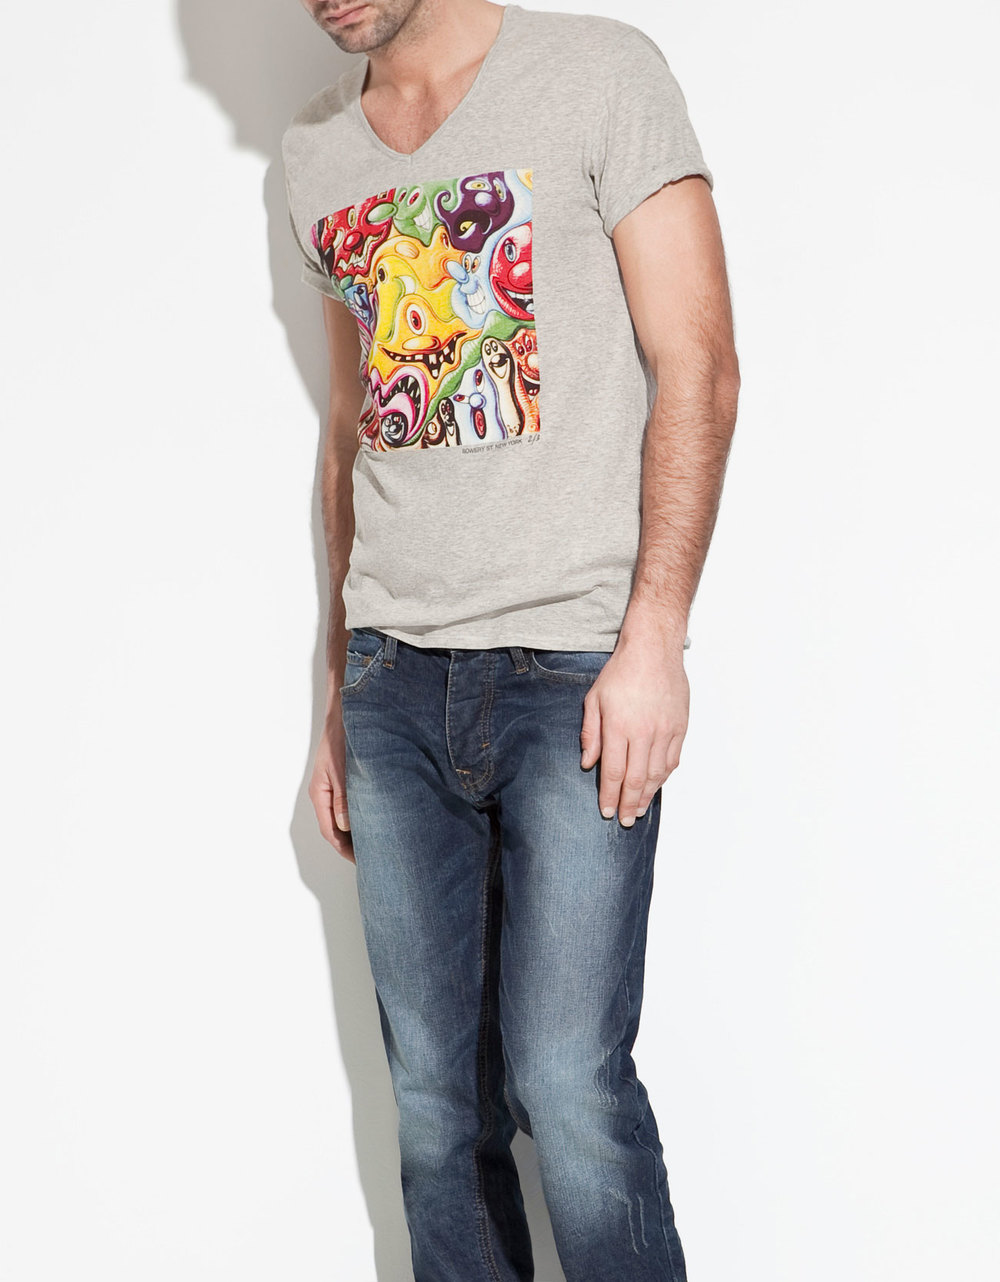 zara-grey-kenny-scharf-t-shirt-product-1-3007941-991129363.jpeg